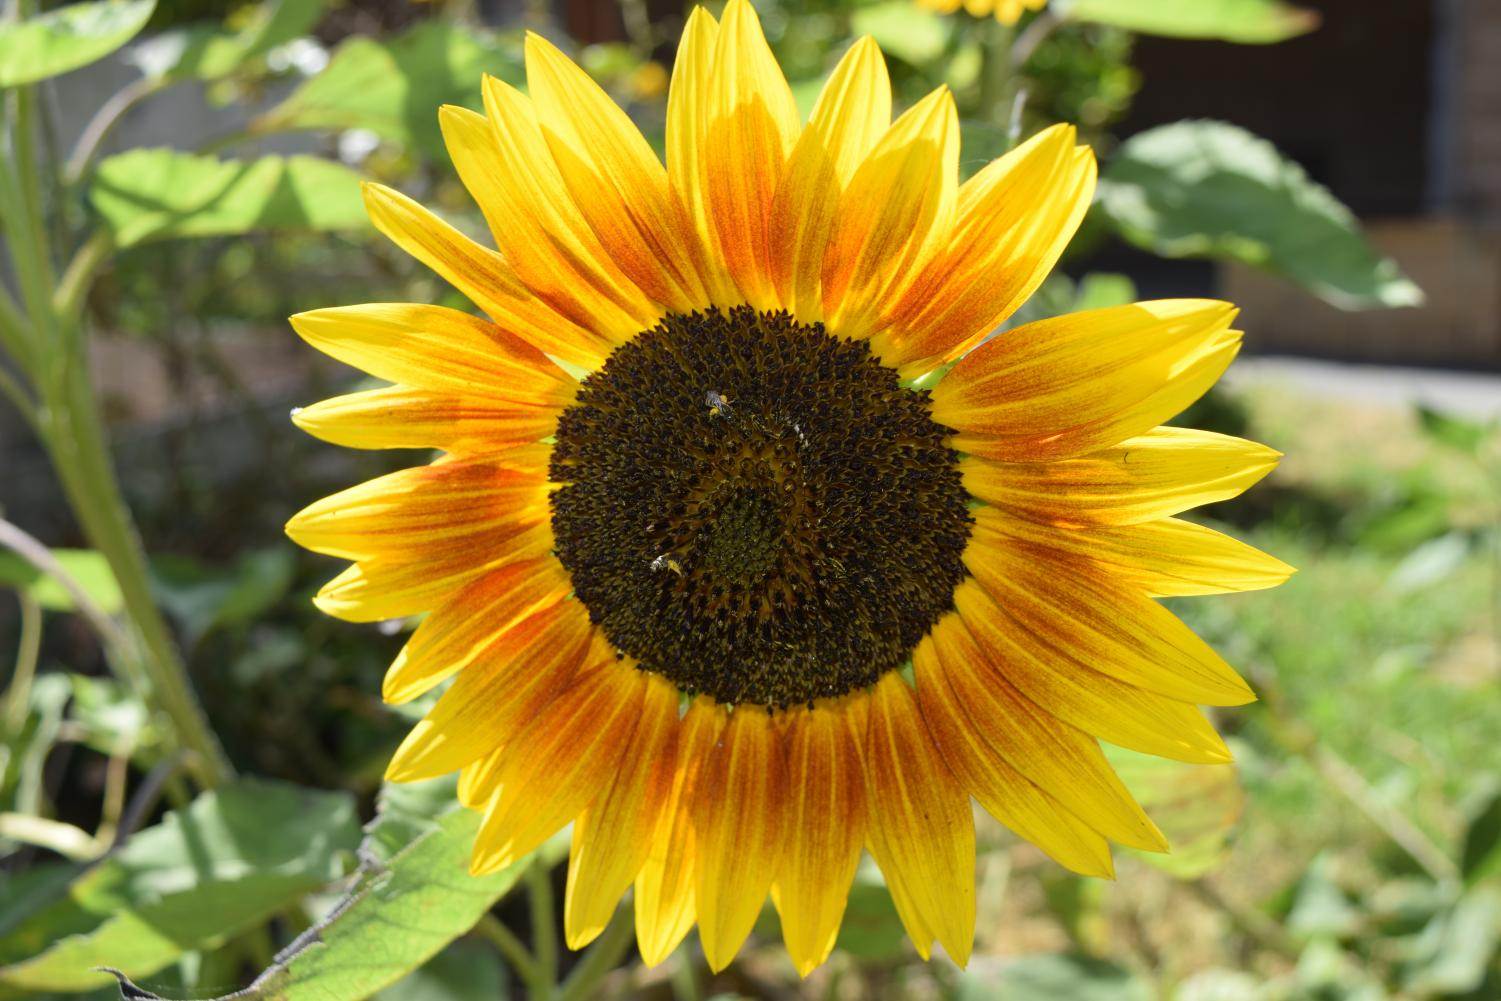 There are such magnificent sunflowers that spread warm thoughts.